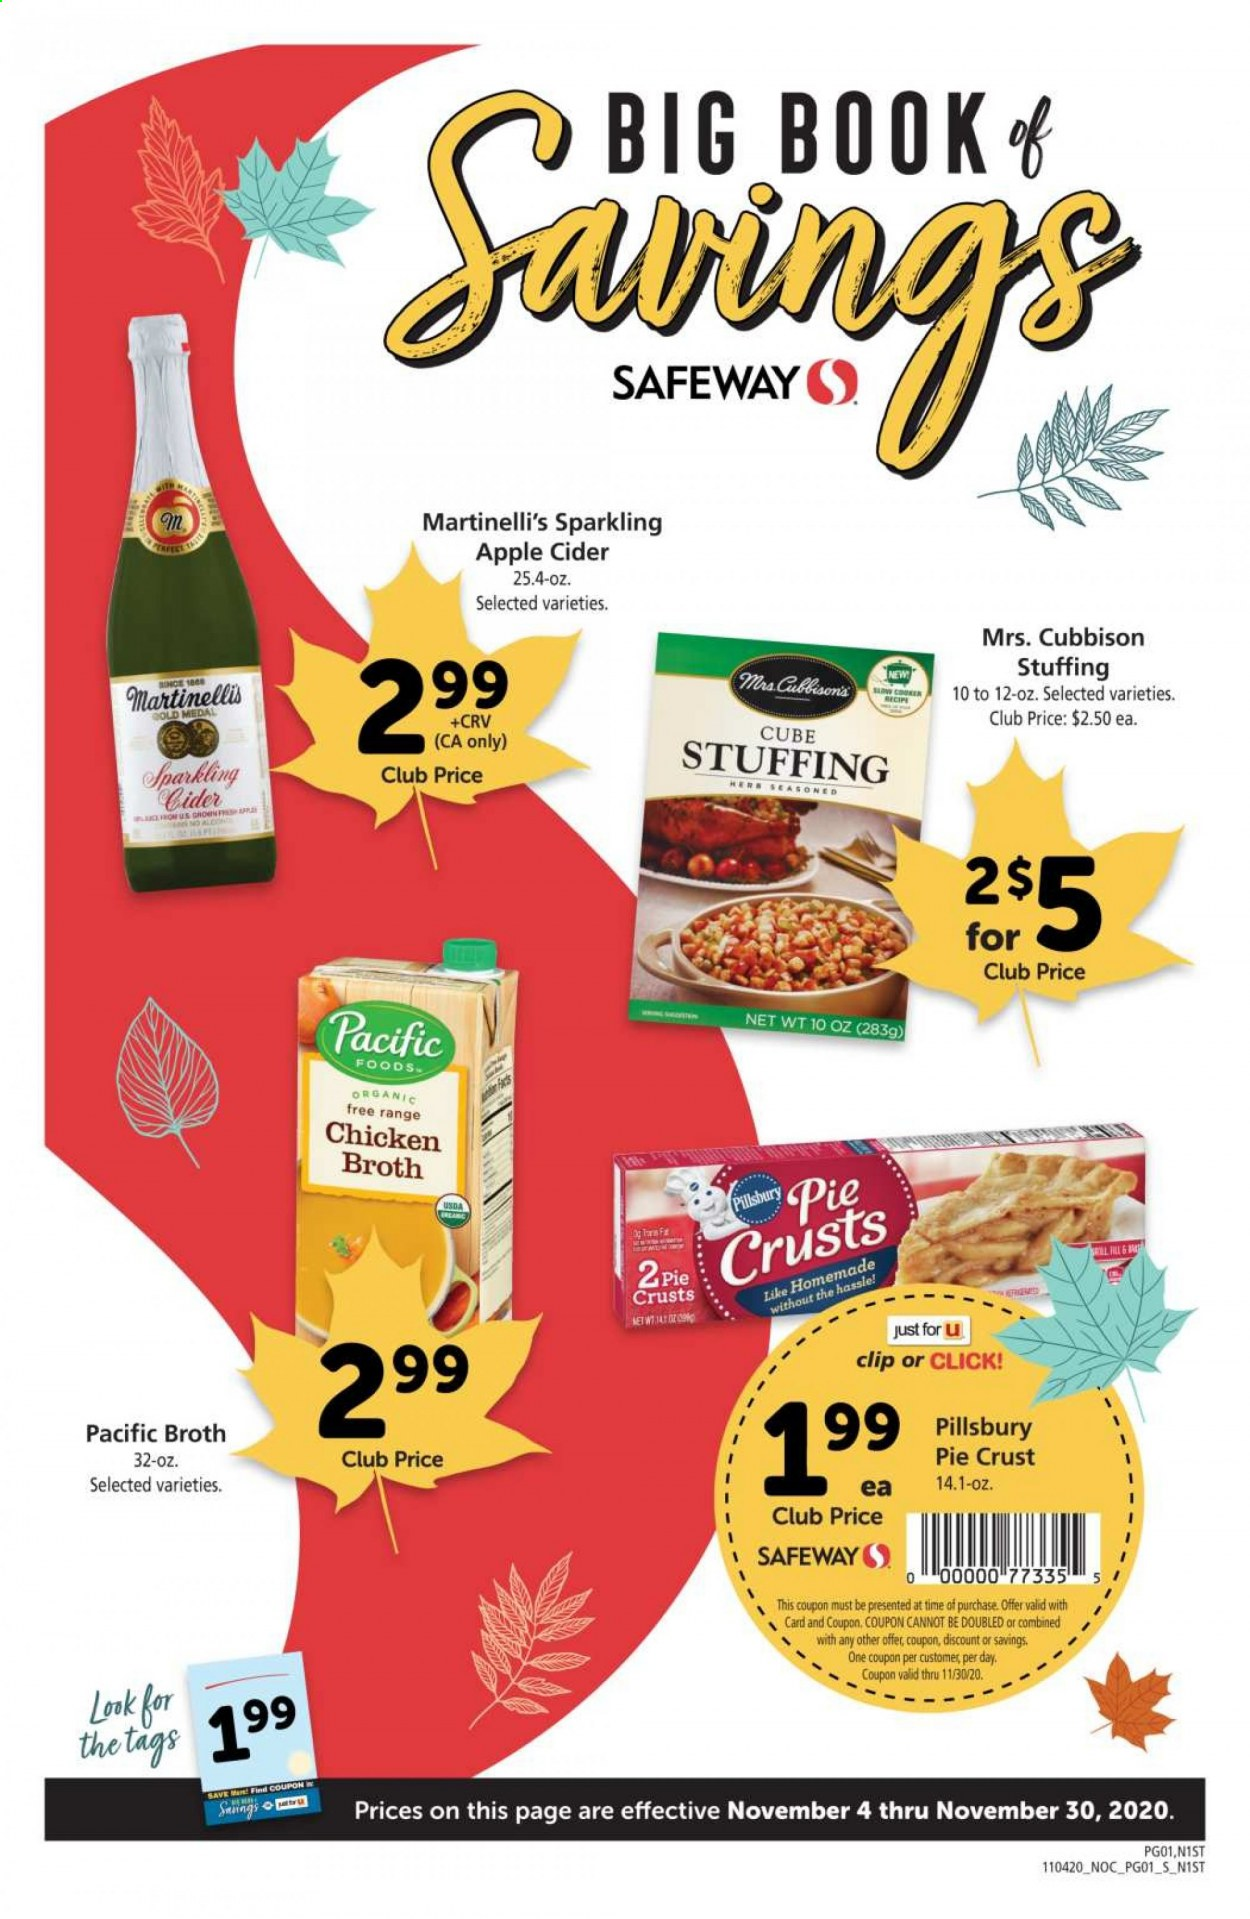 Safeway Flyer - 11.04.2020 - 11.30.2020 - Sales products - apple cider, sparkling cider, pie crust, chicken, pie, book, fa men. Page 1.